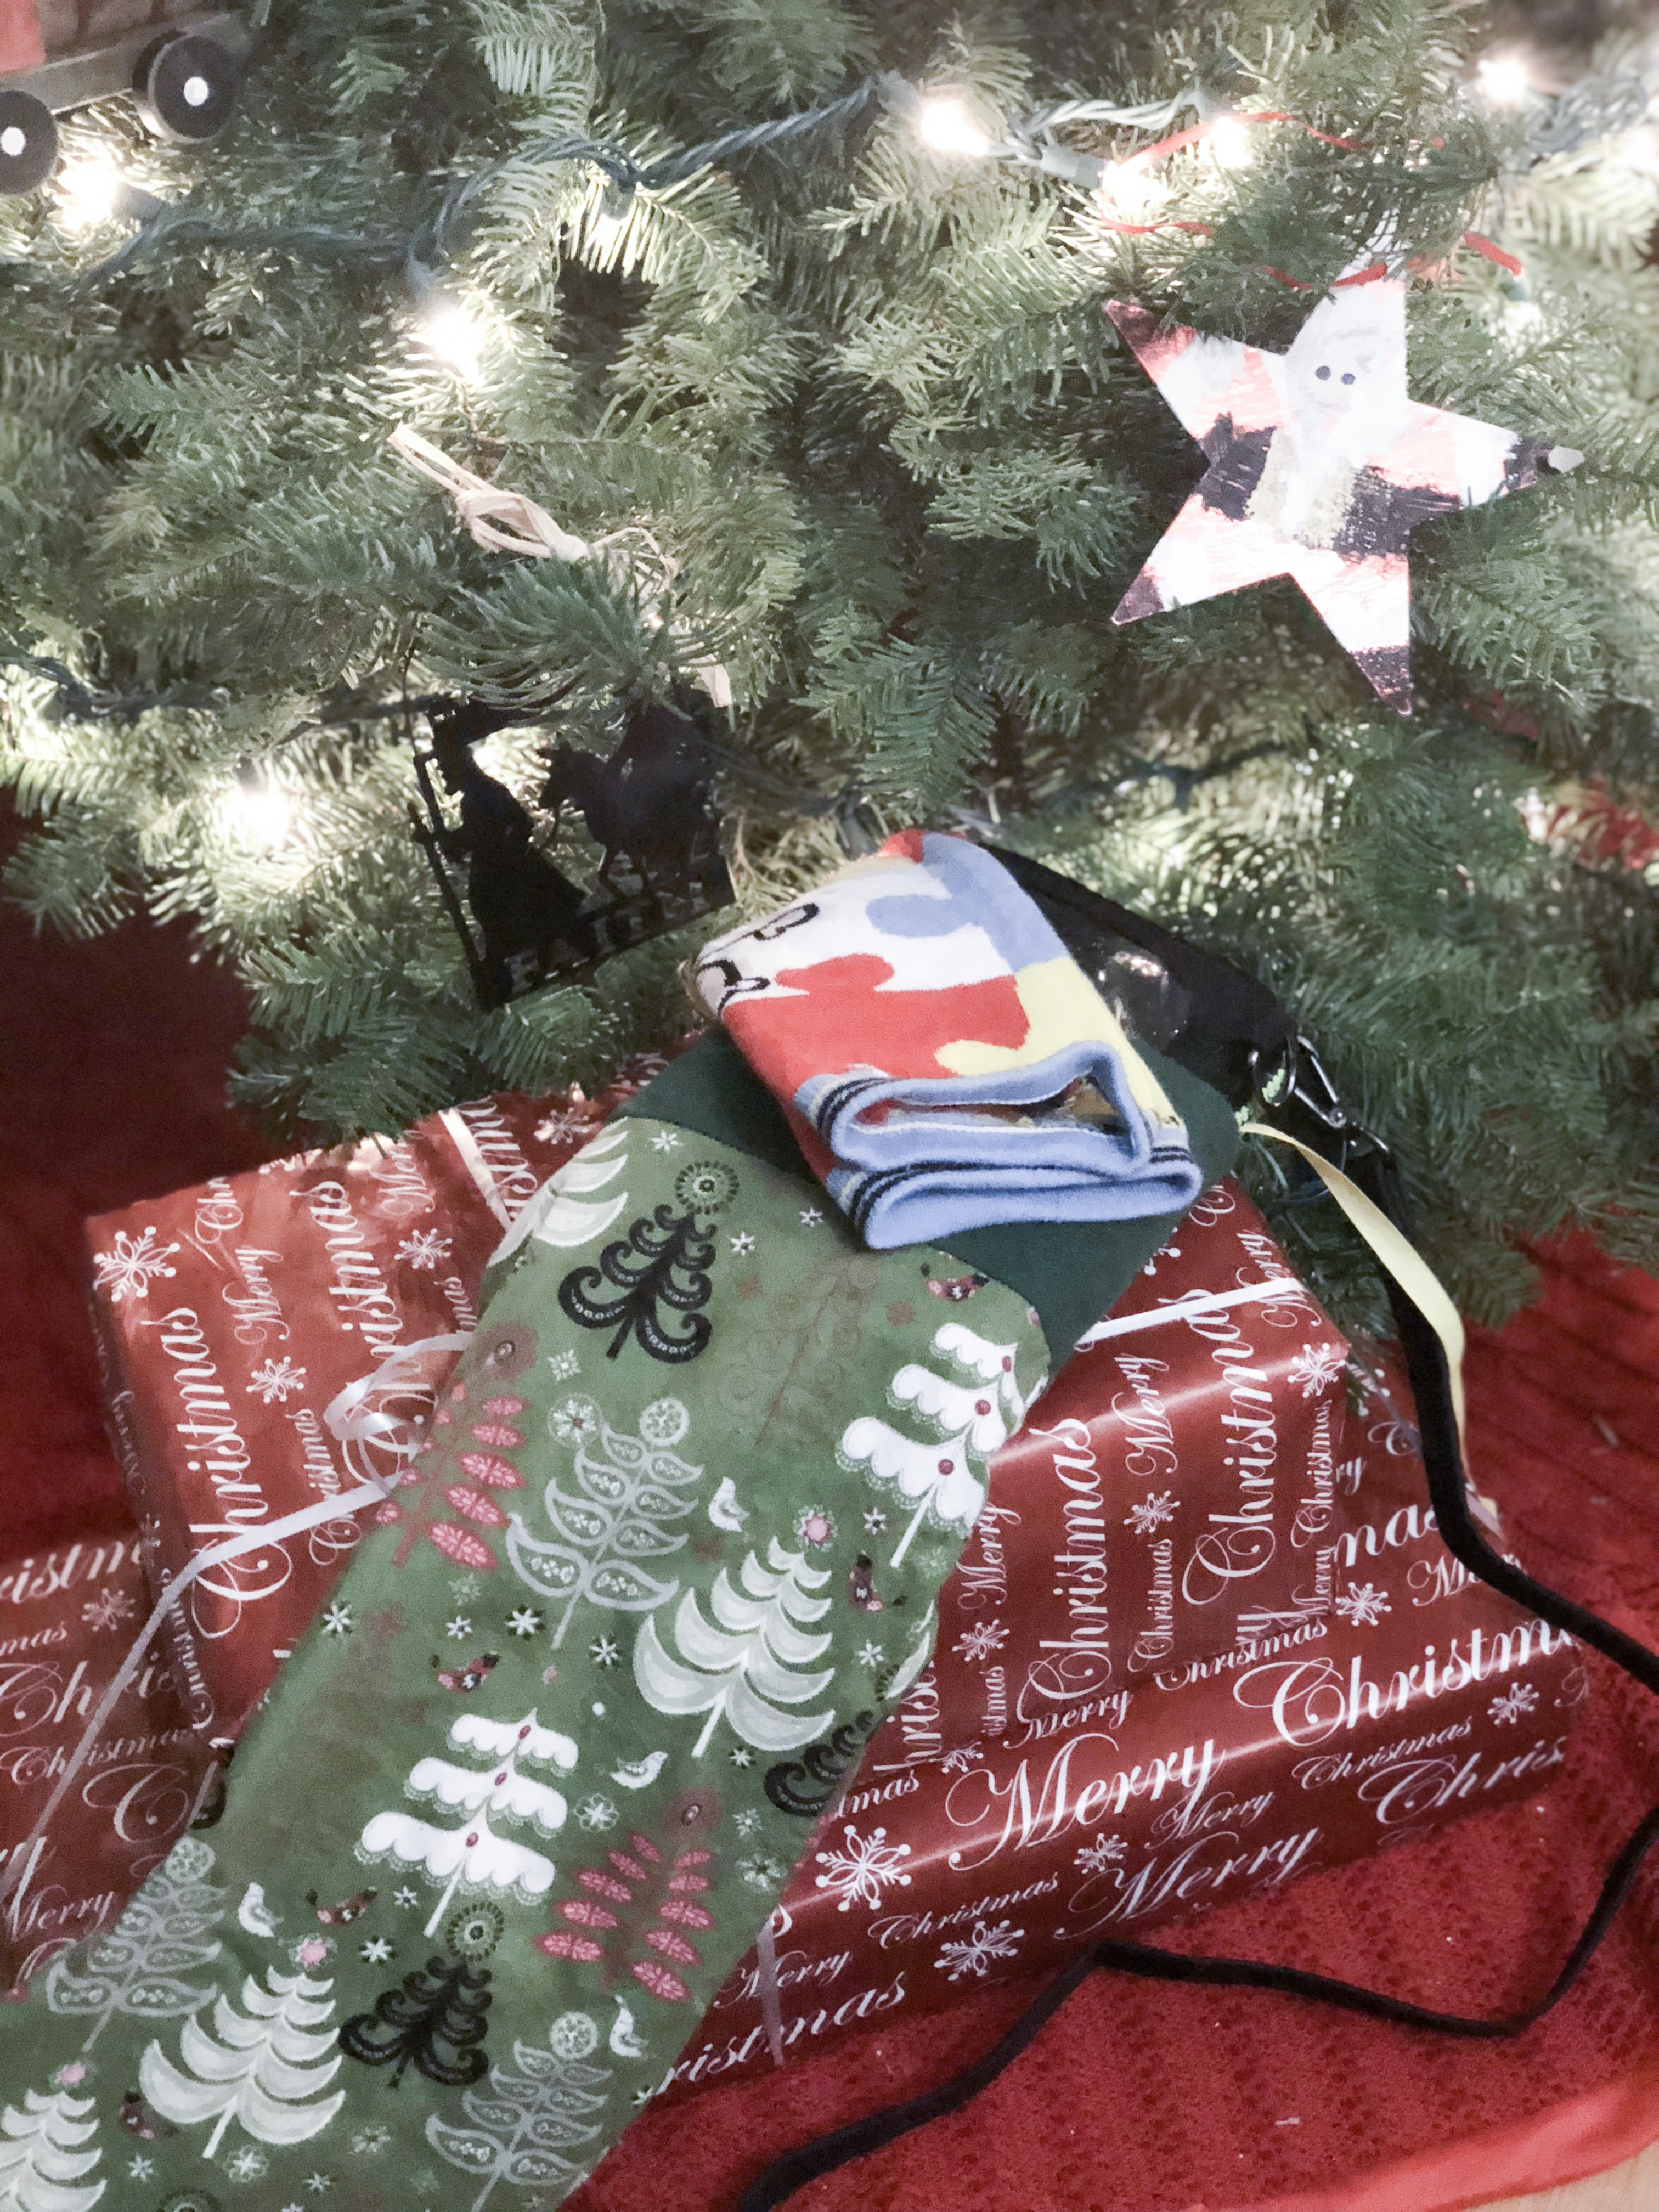 The Best Stocking Stuffers for College Students - Unique and Fun